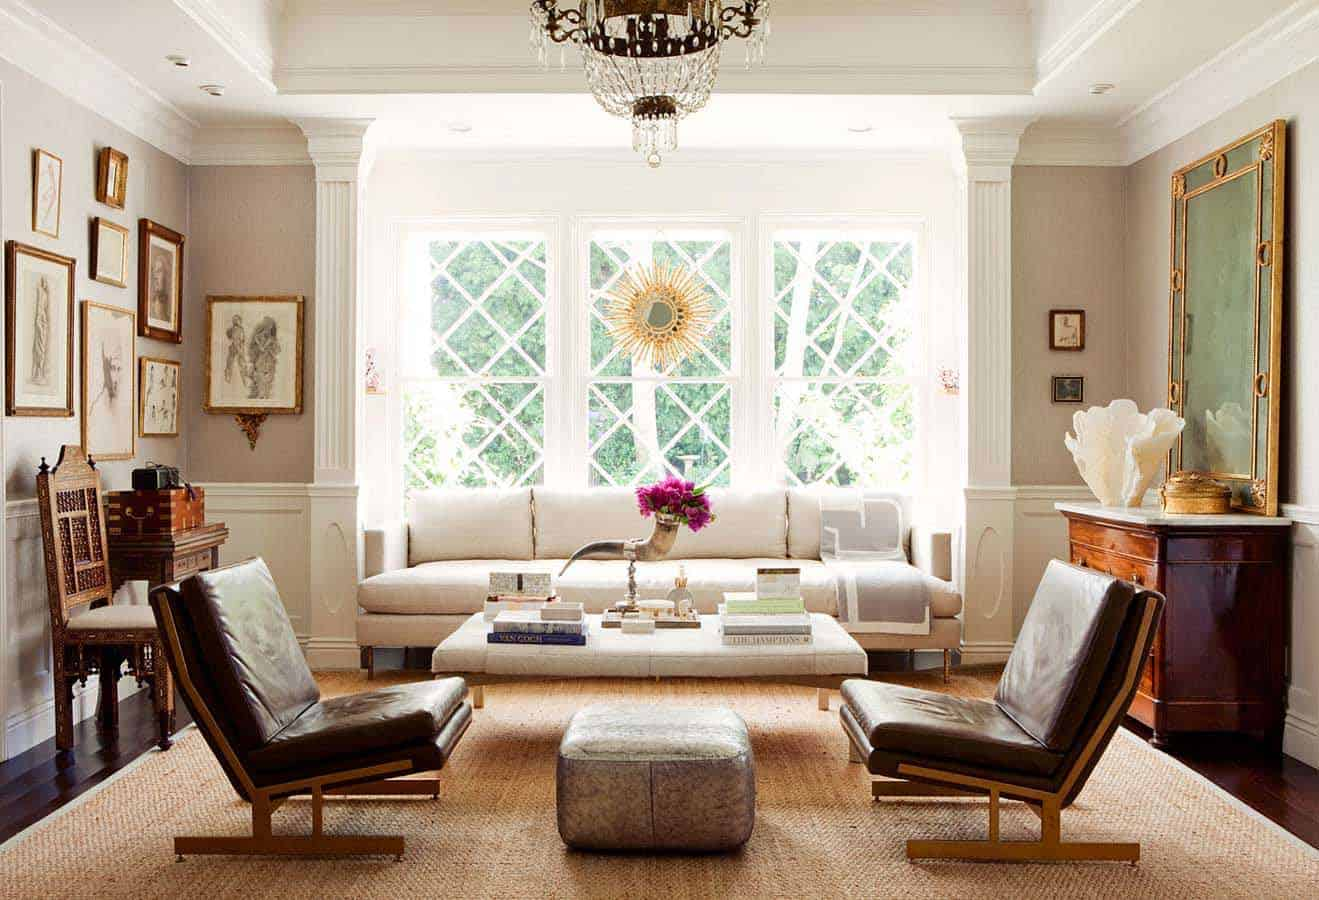 pictures of living room furniture arrangements occasional chairs arranging kristina wolf design